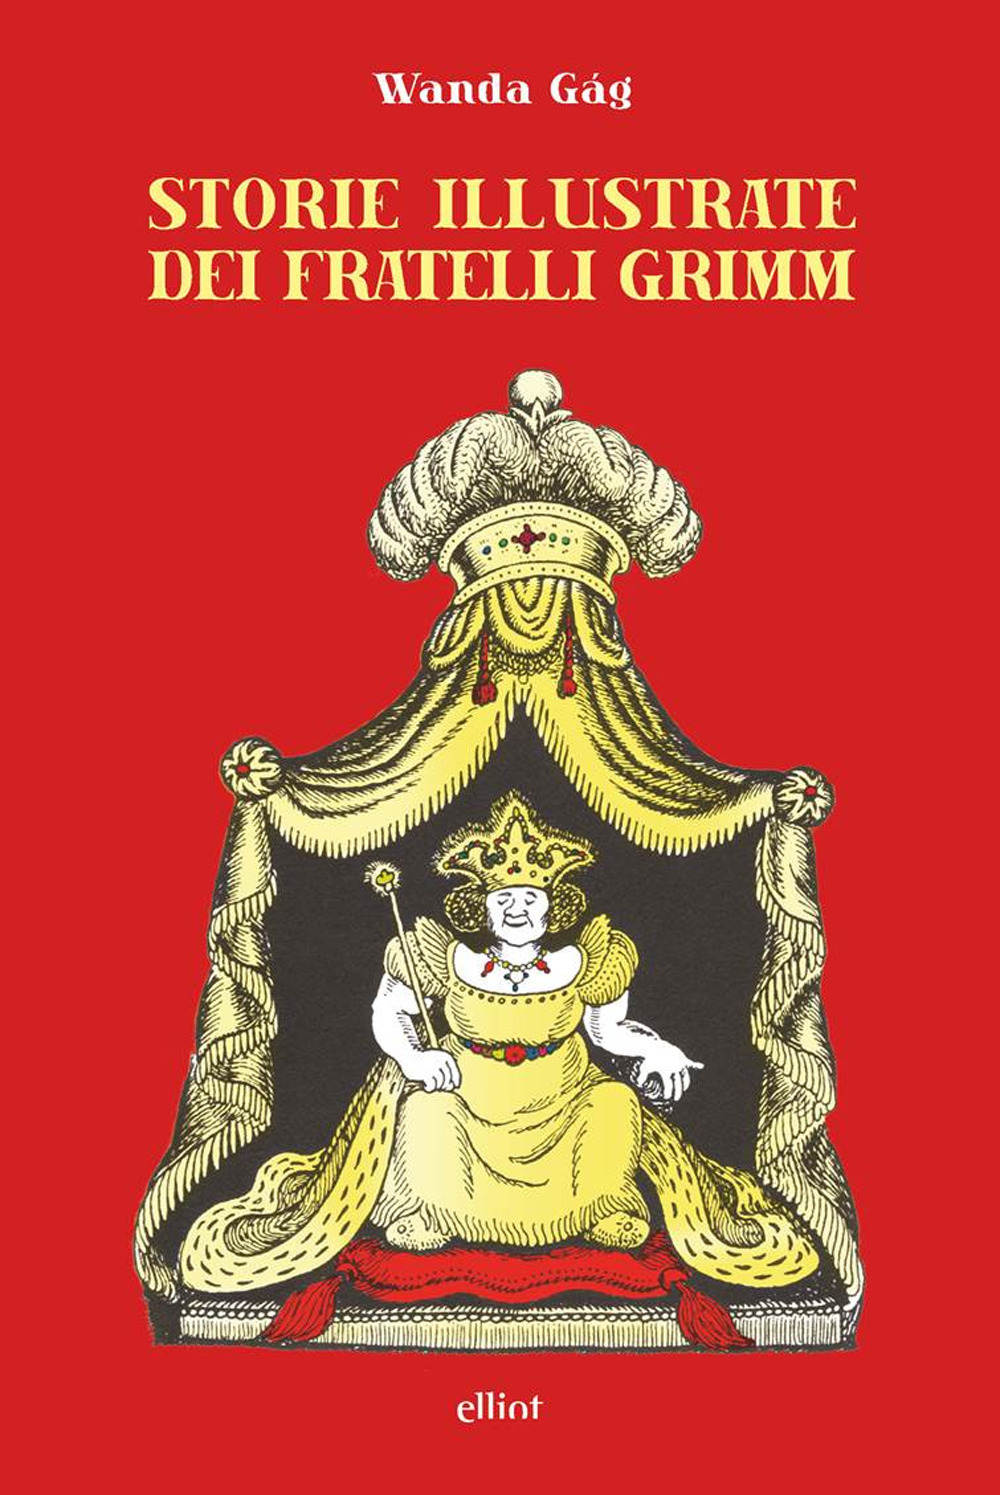 Image of Fiabe dei fratelli Grimm